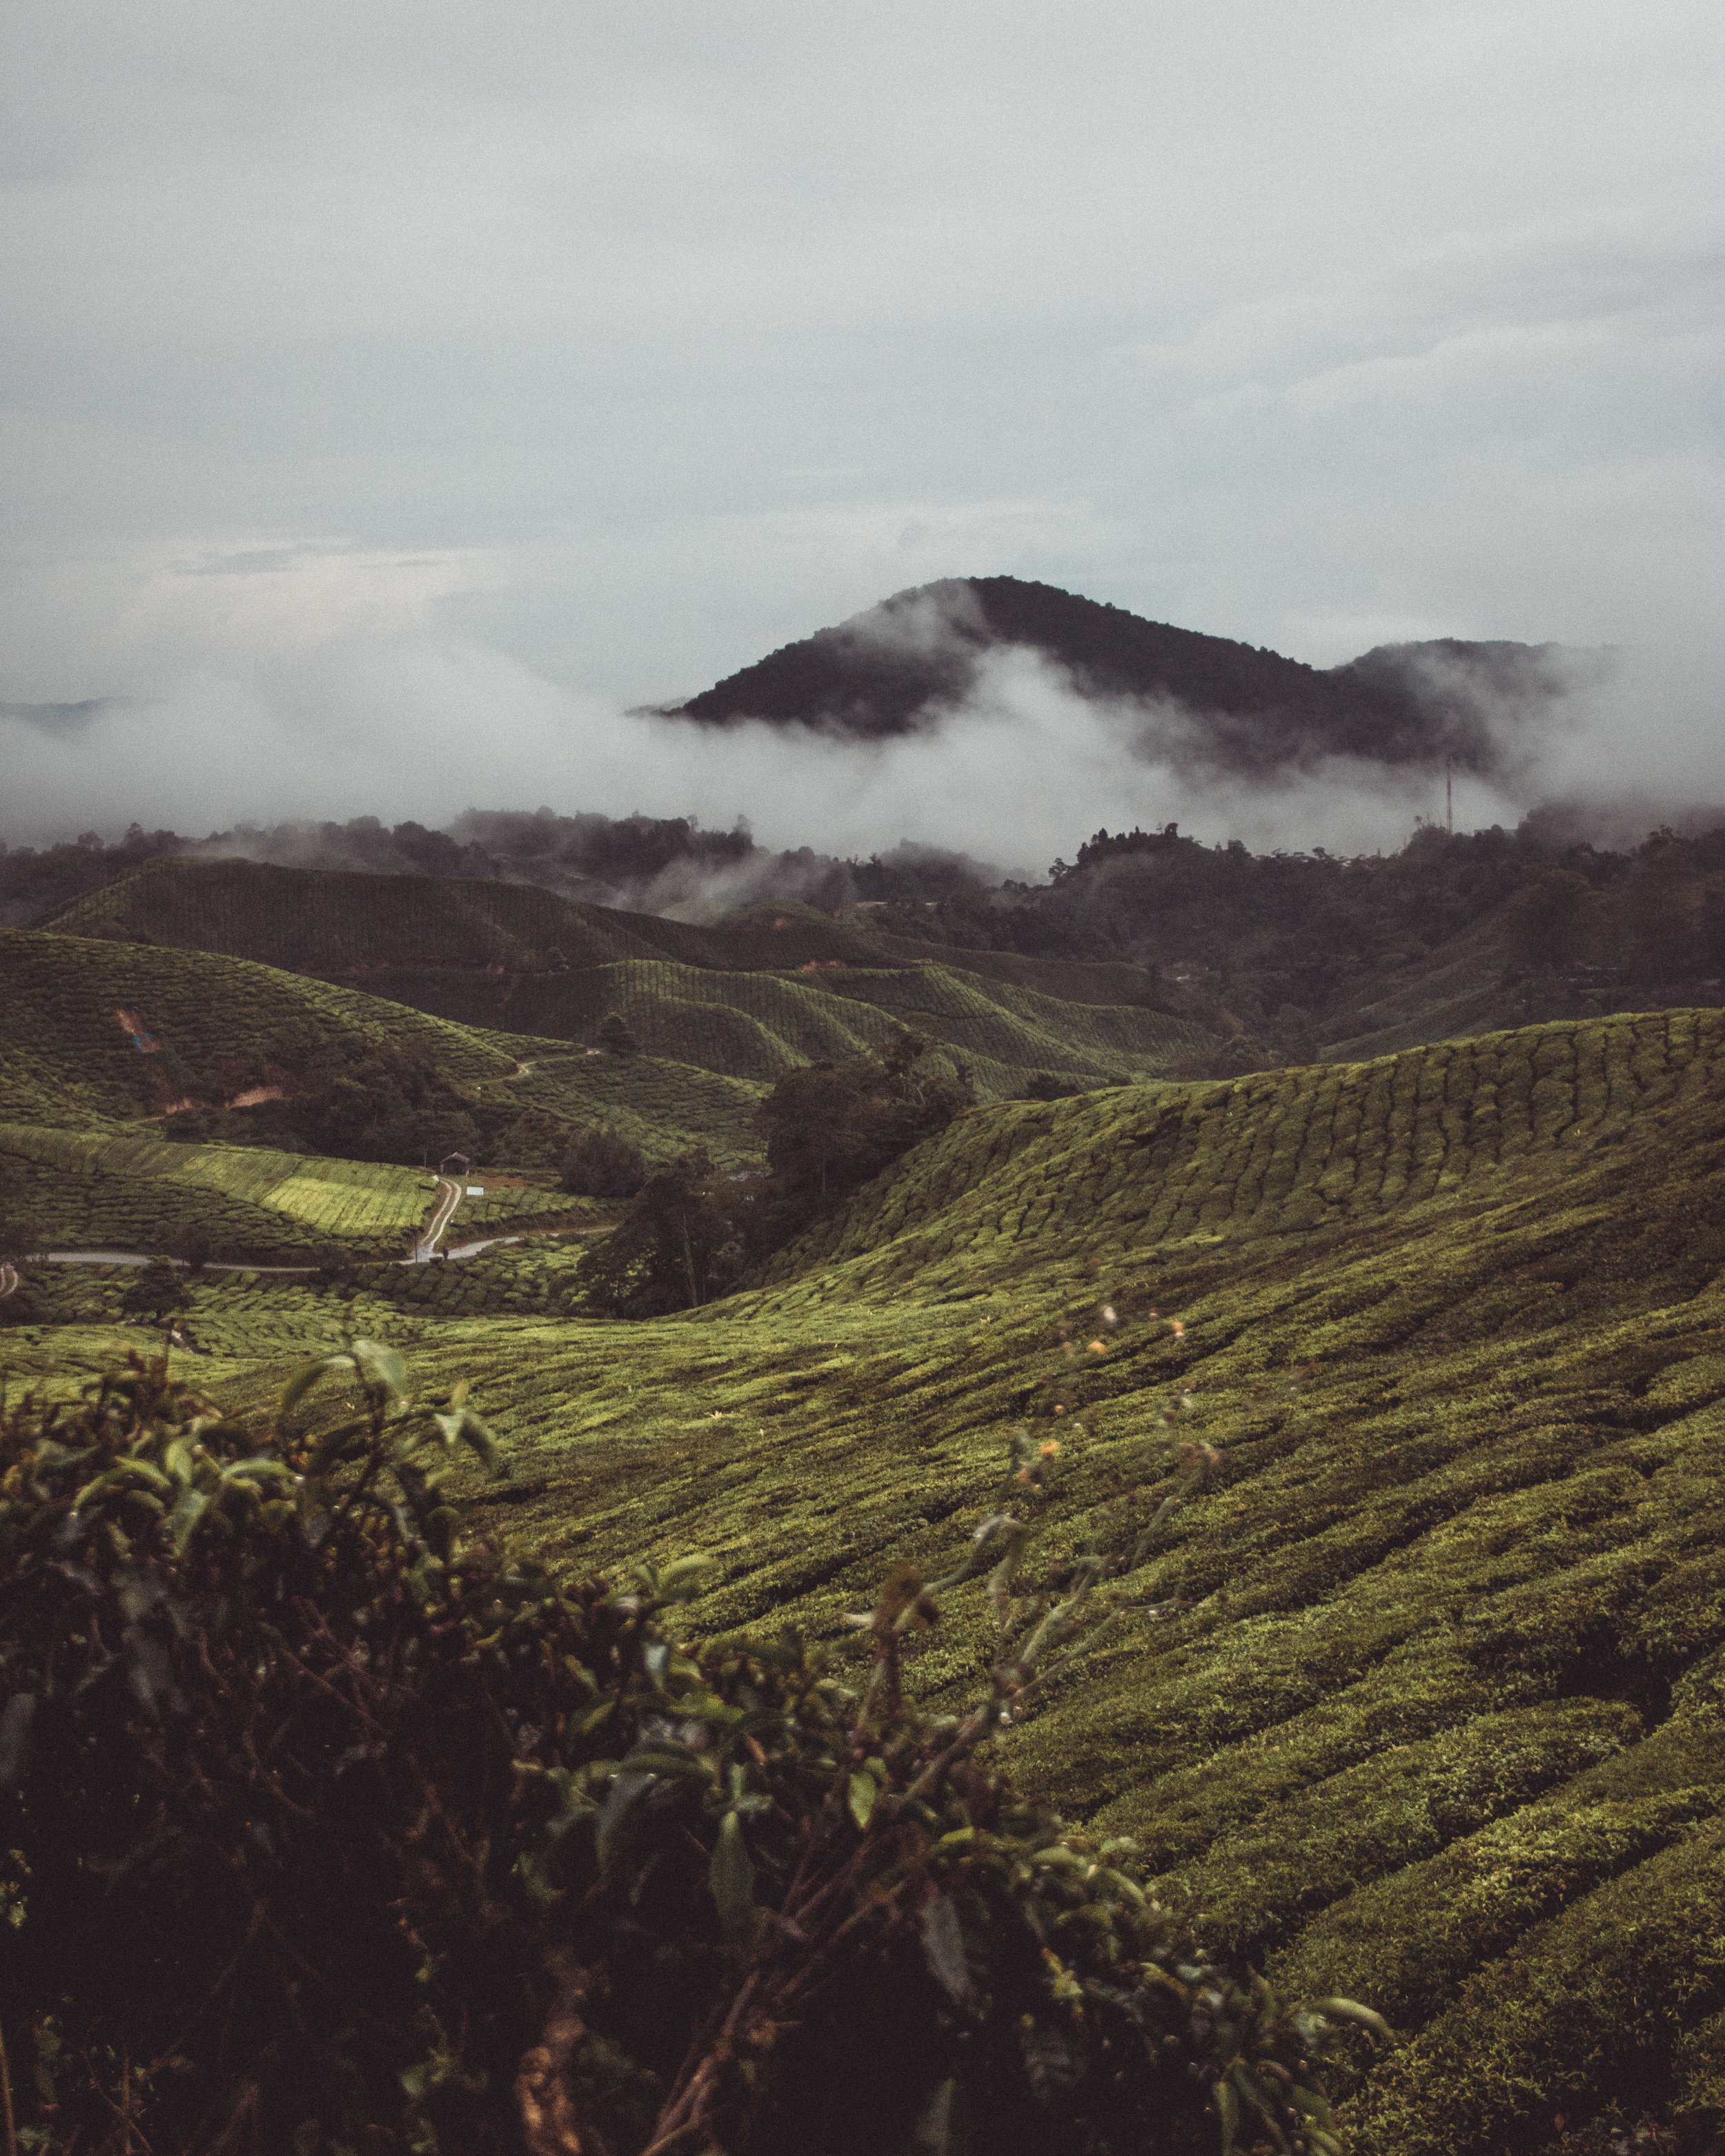 Farms in the beautiful Cameron Highlands.